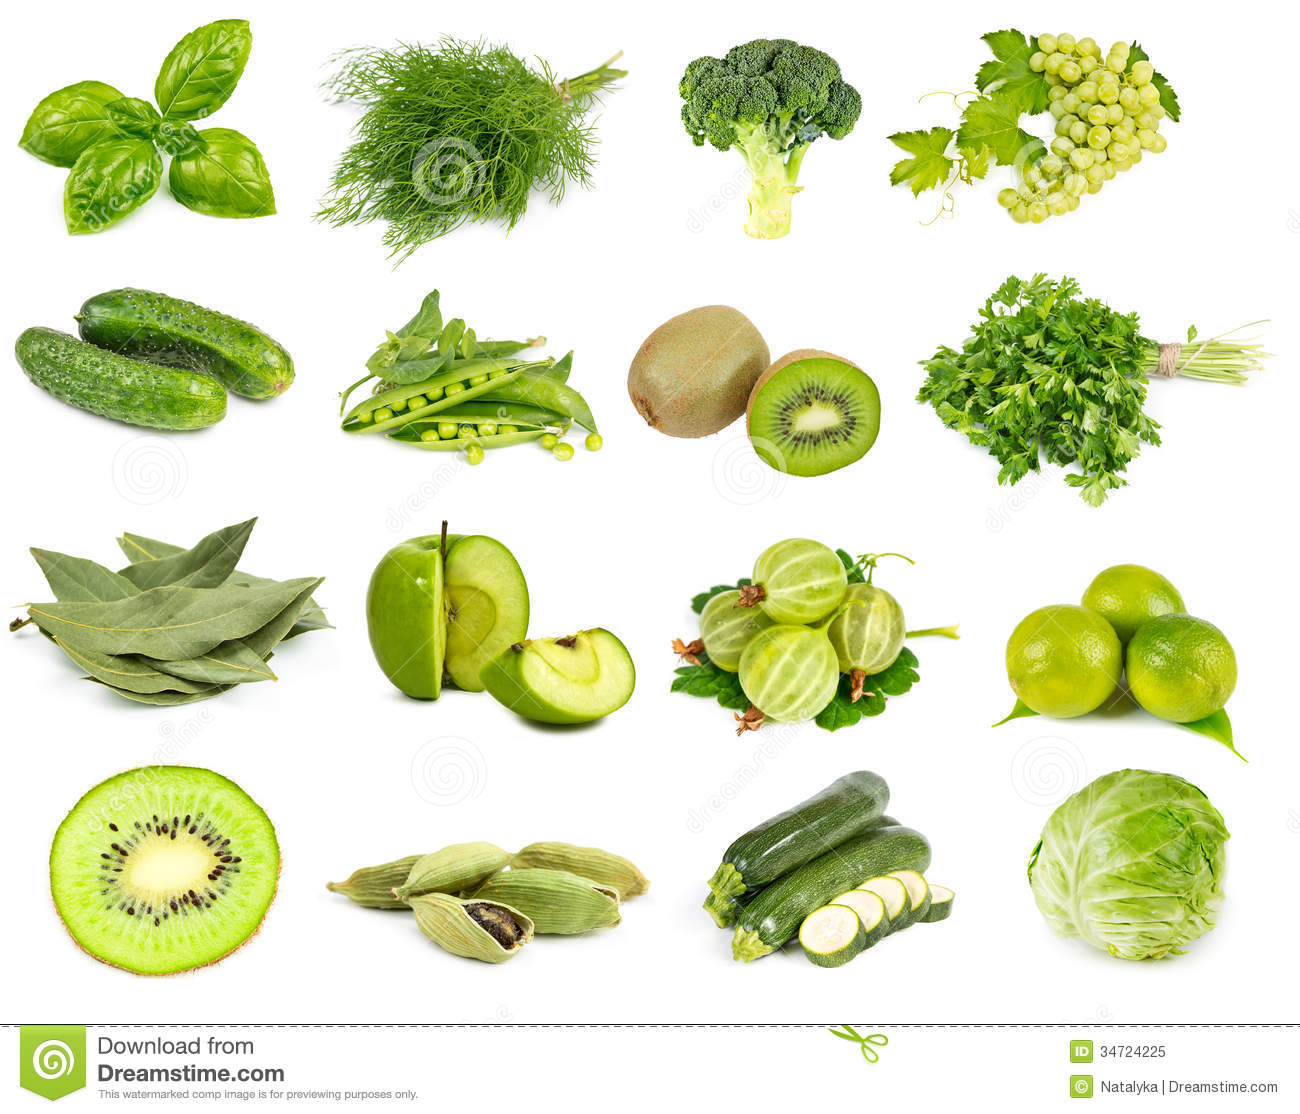 Vegetables Fruits And Spices Green Color Royalty Free